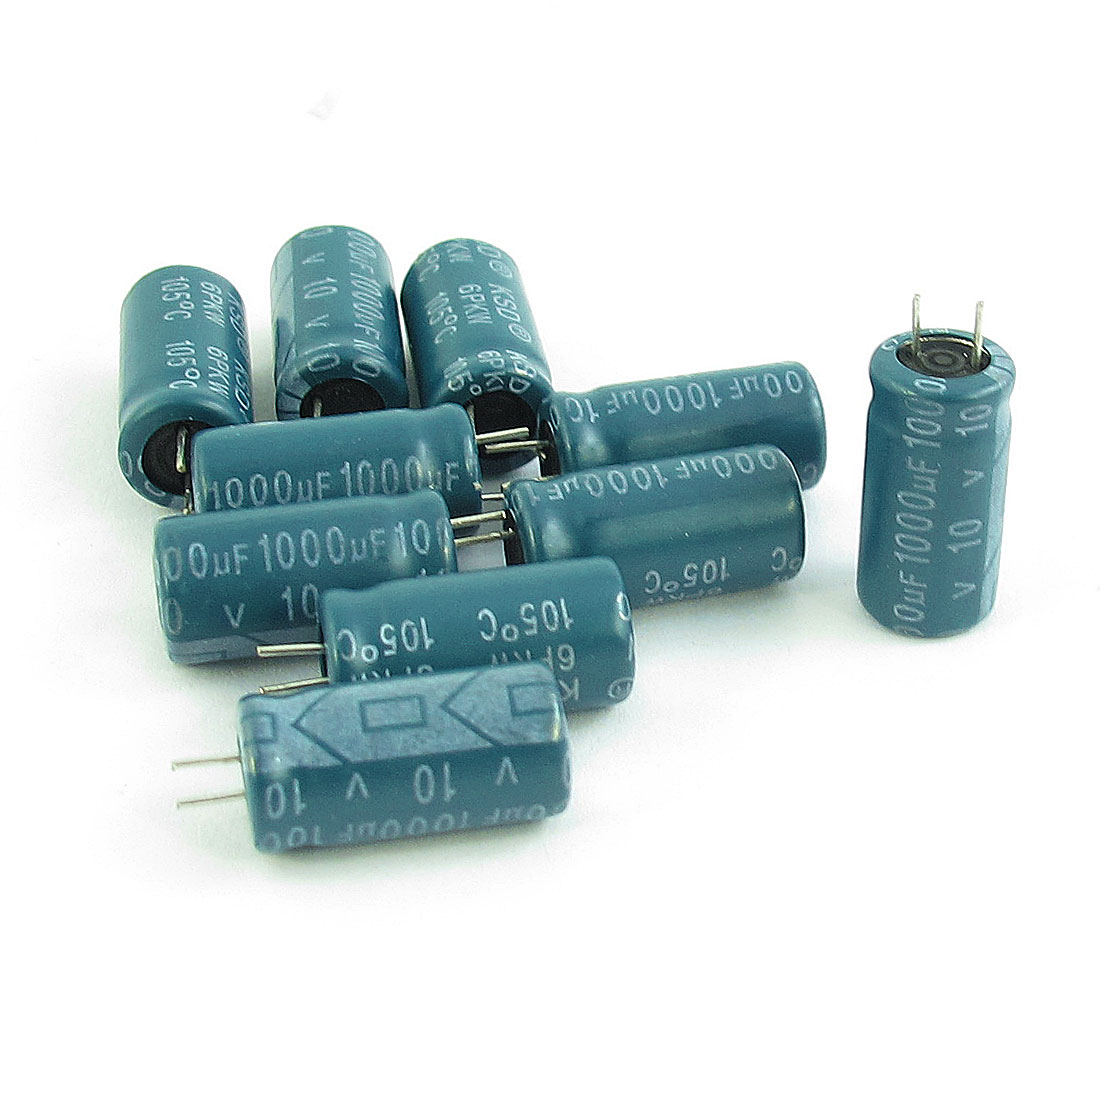 10pcs Electronic Component 1000uF 10V 105C Electrolytic Capacitor 8x16mm